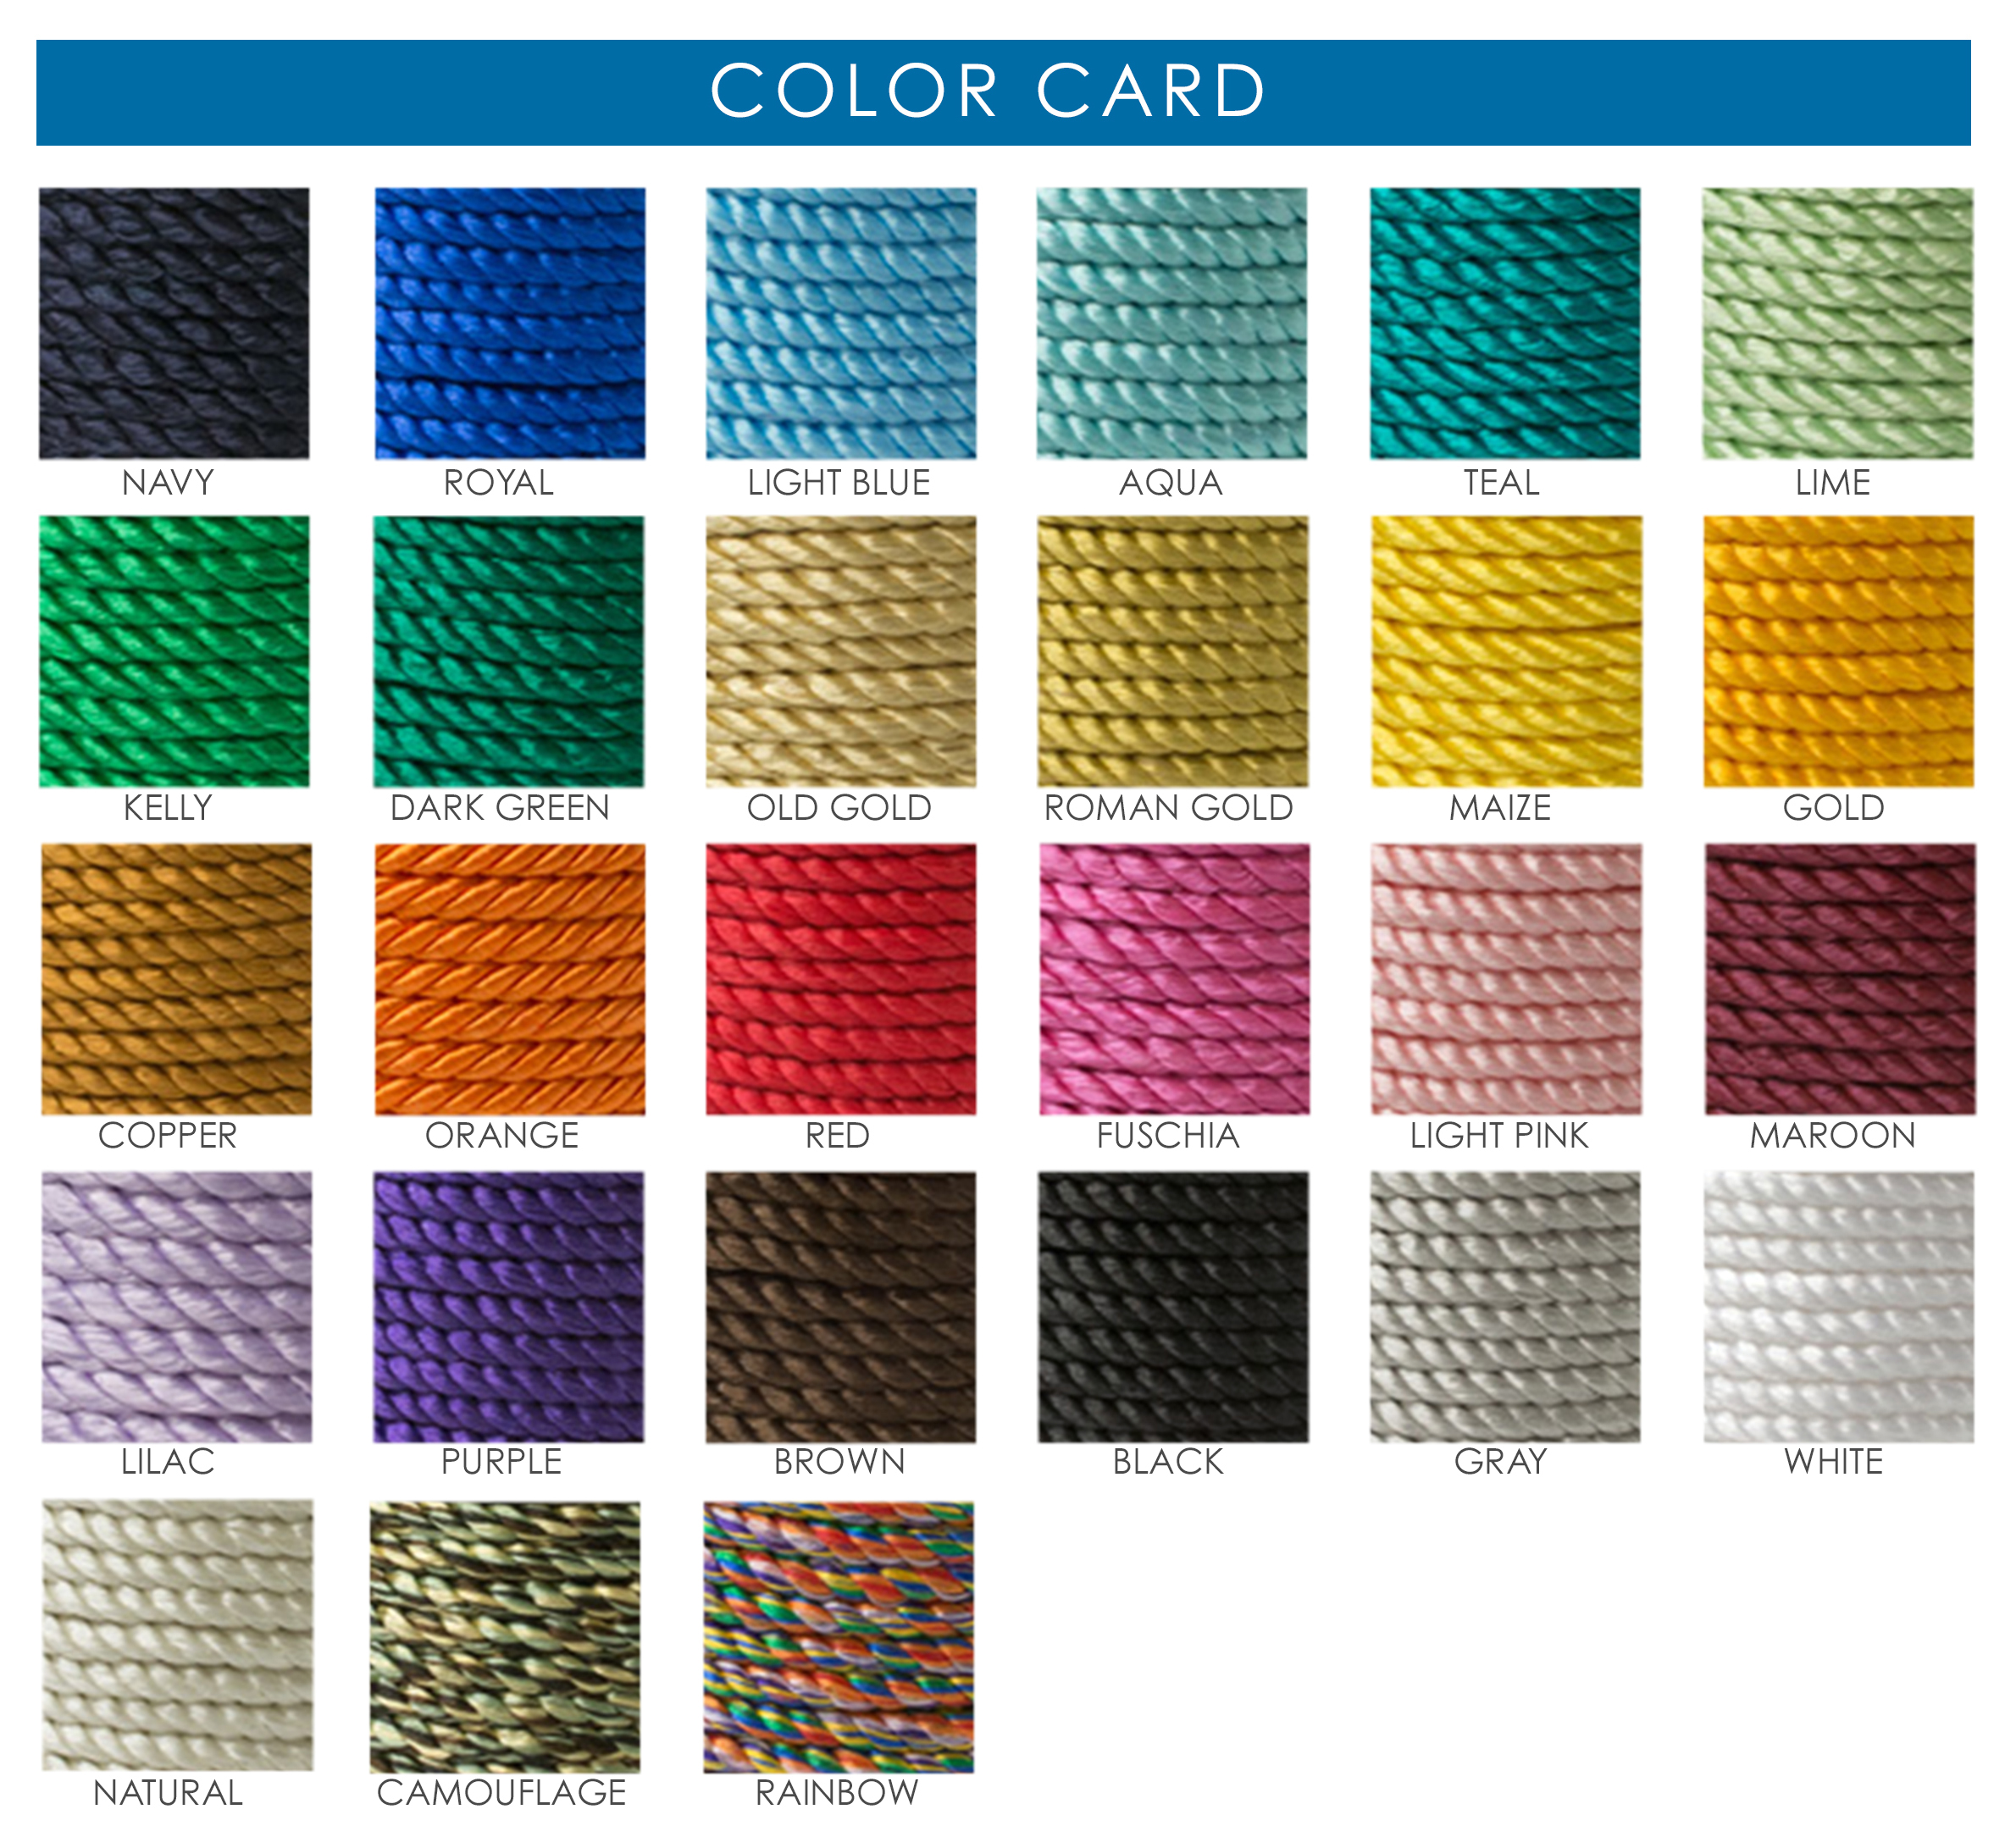 Colors That Match Turquoise Choose The Right Color With Our Color Card Tassel Depot